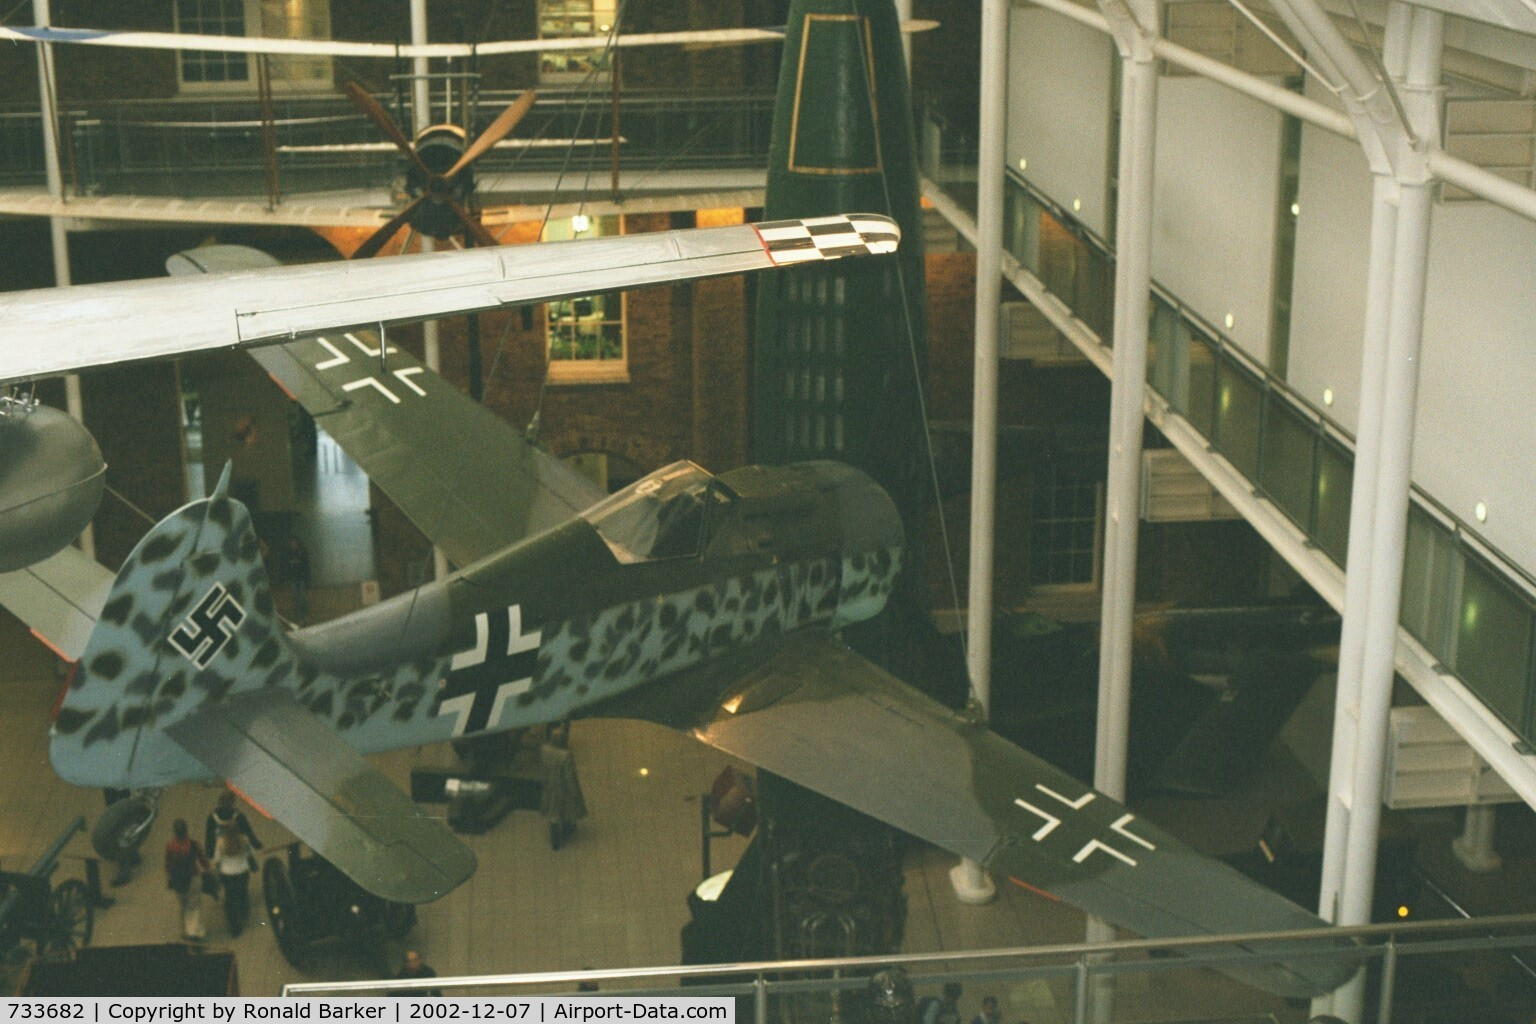 733682, 1944 Focke-Wulf Fw-190A-8 C/N 733682, Imperial War Museum, London